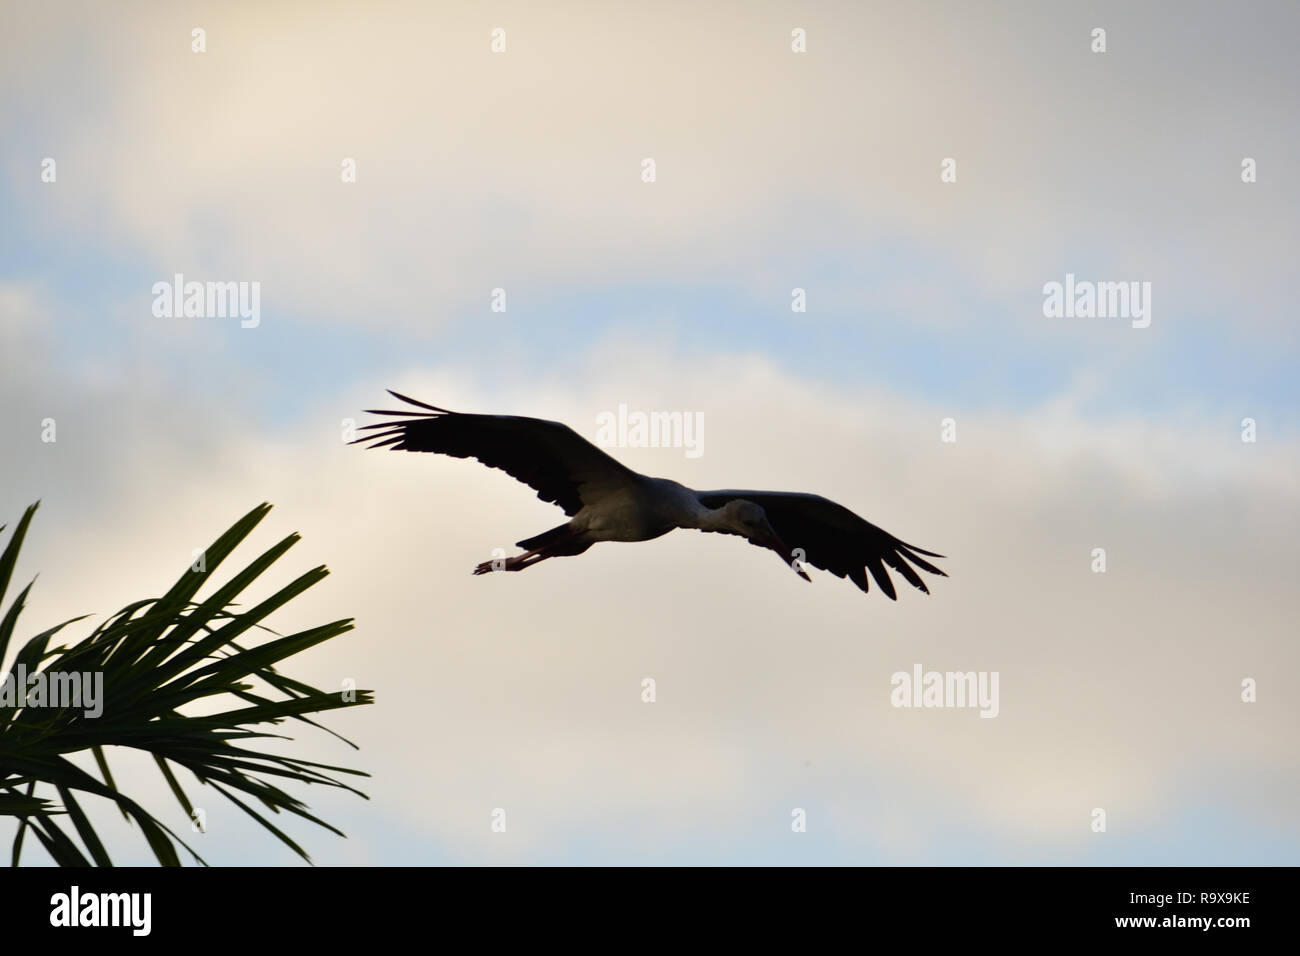 White stork flying in the sky with its spread wings Stock Photo